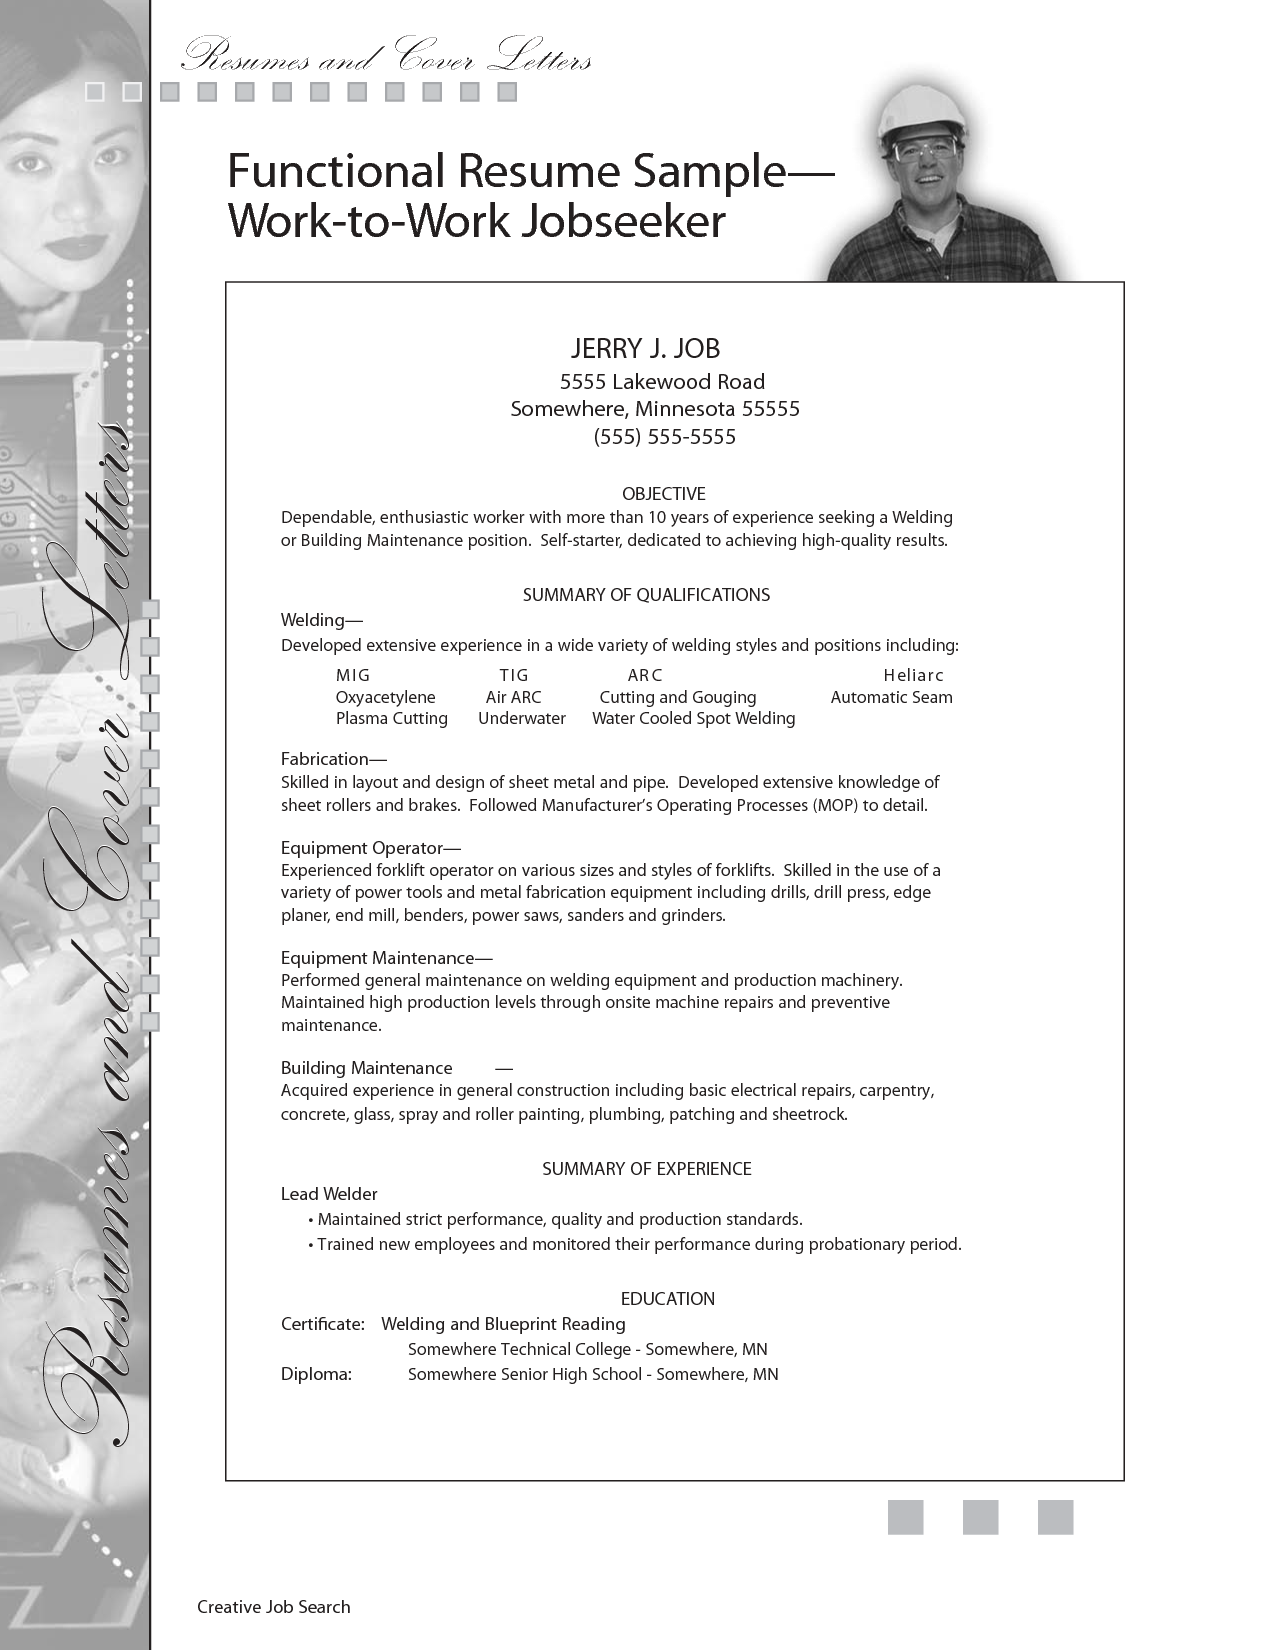 Cv Resume Builder Sample Resume For Welding Position  Sample Building Maintenance